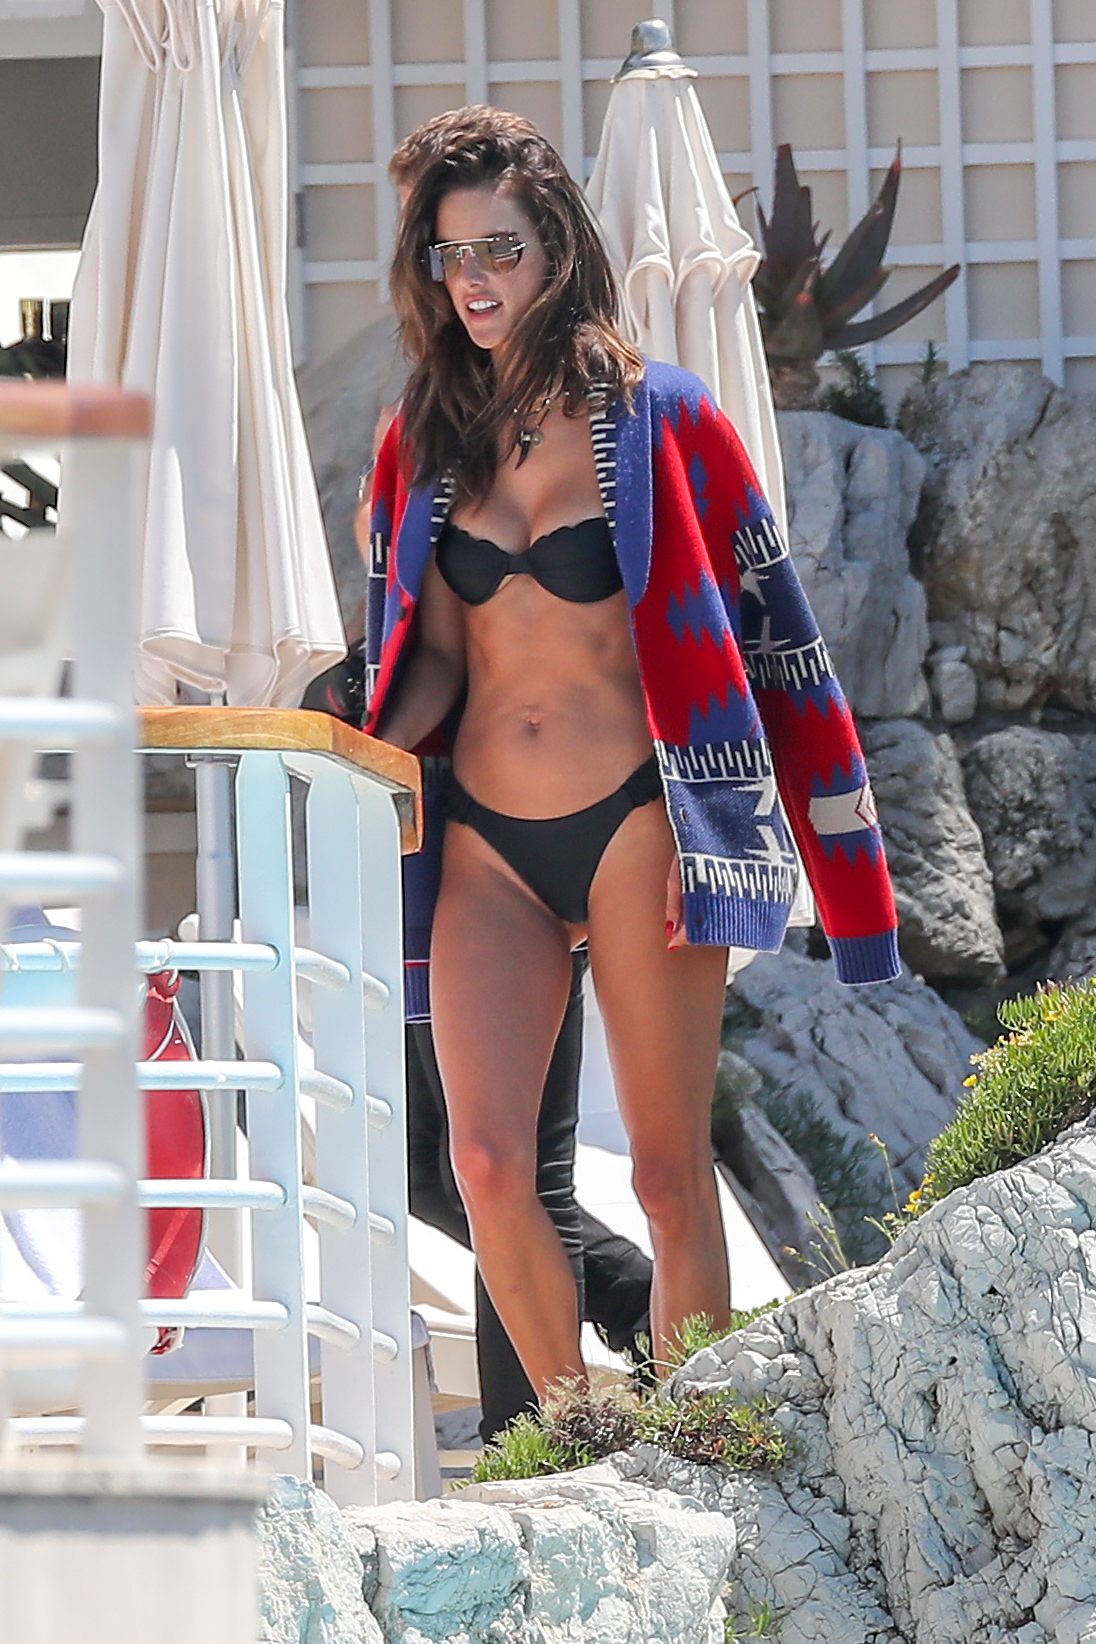 Alessandra Ambrosio wears a bikini while hanging out by the pool at the Hôtel du Cap Eden Roc in France on May 16, 2019.